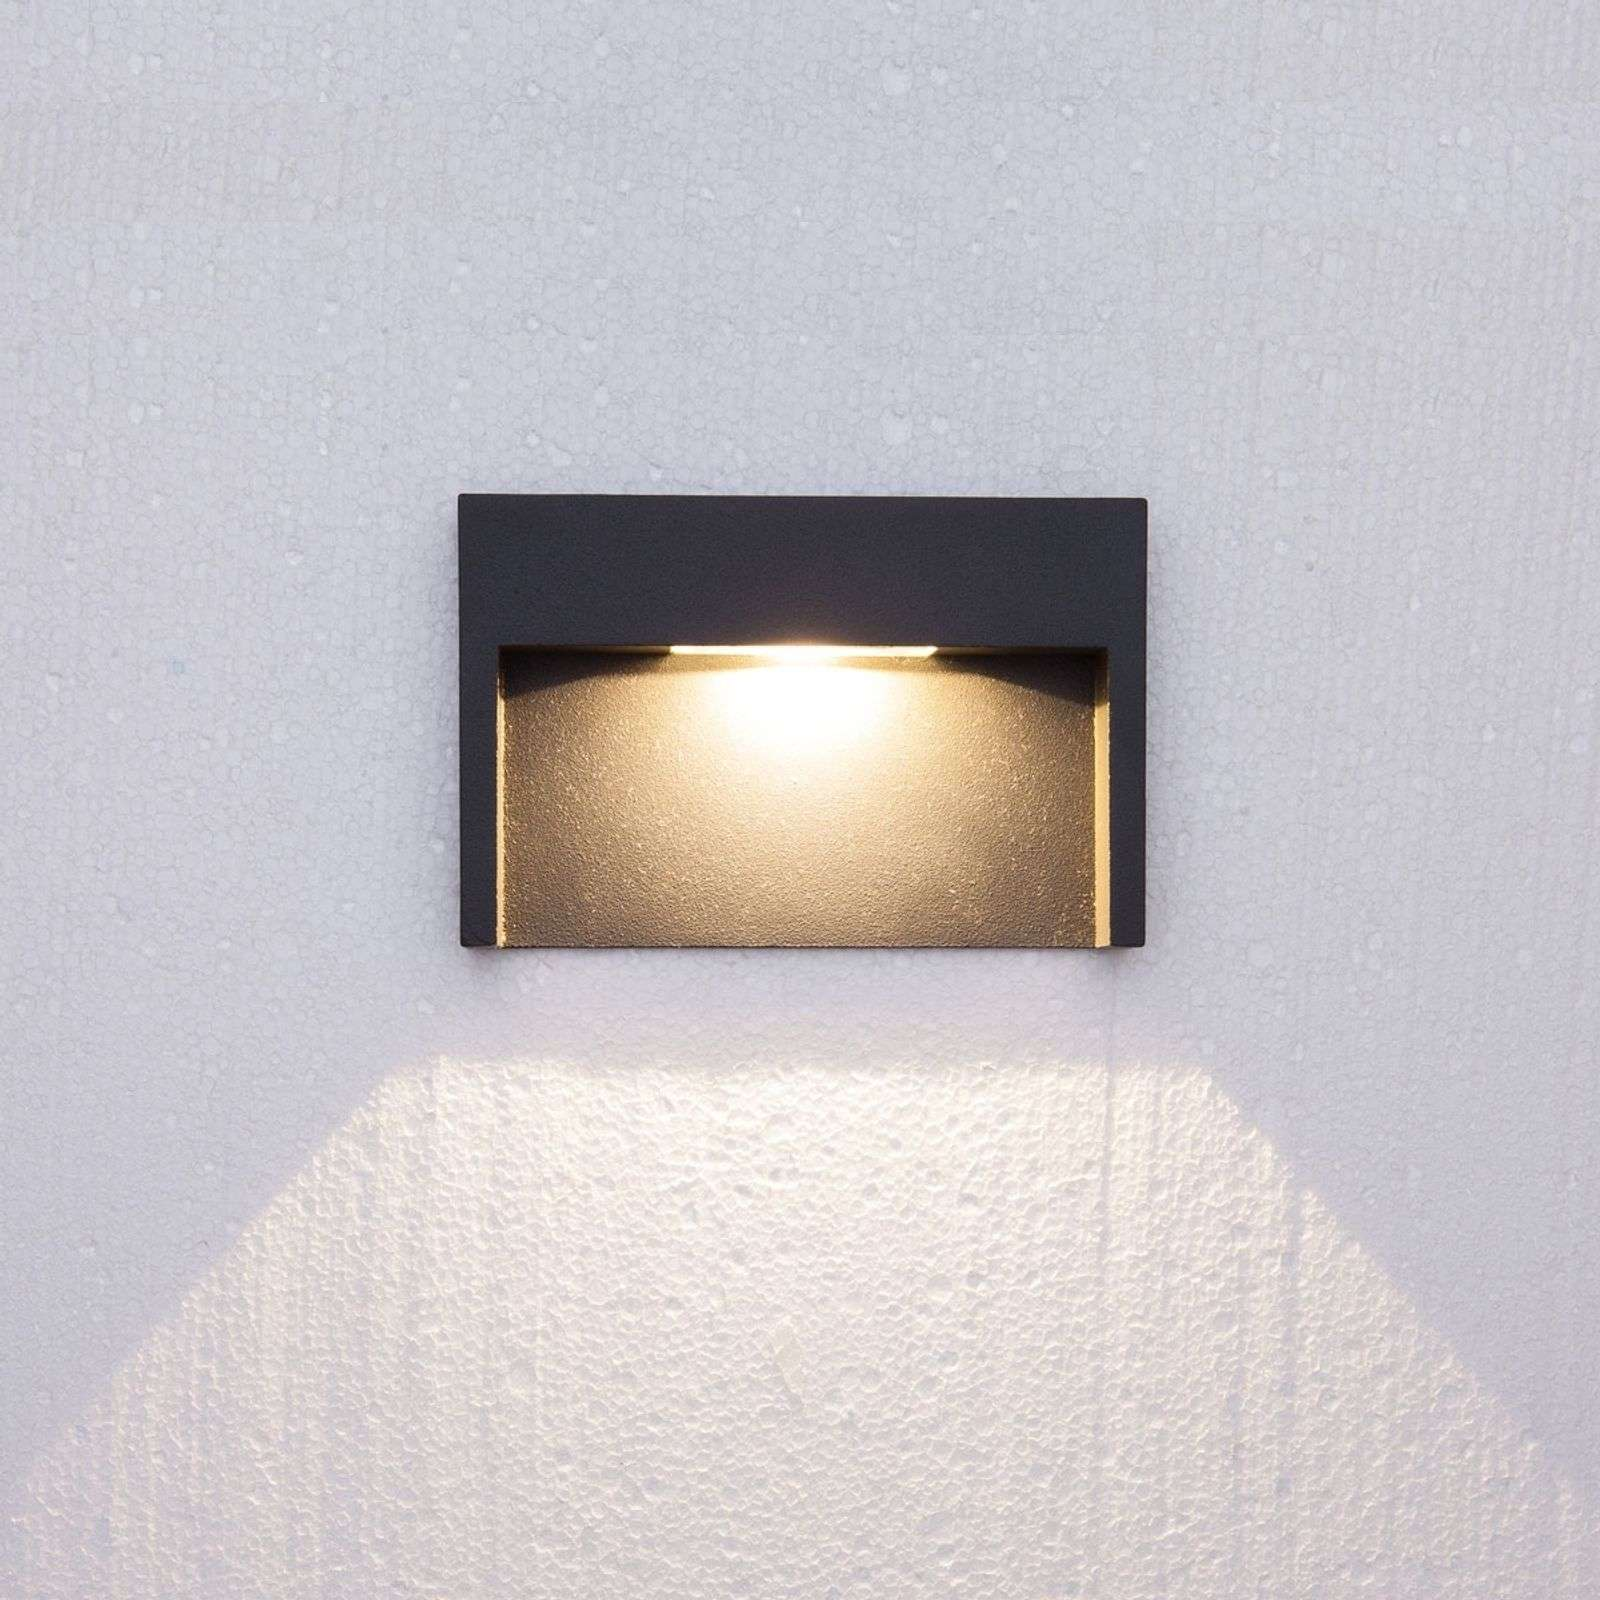 Applique Mitja, a LED di 3 W, IP65